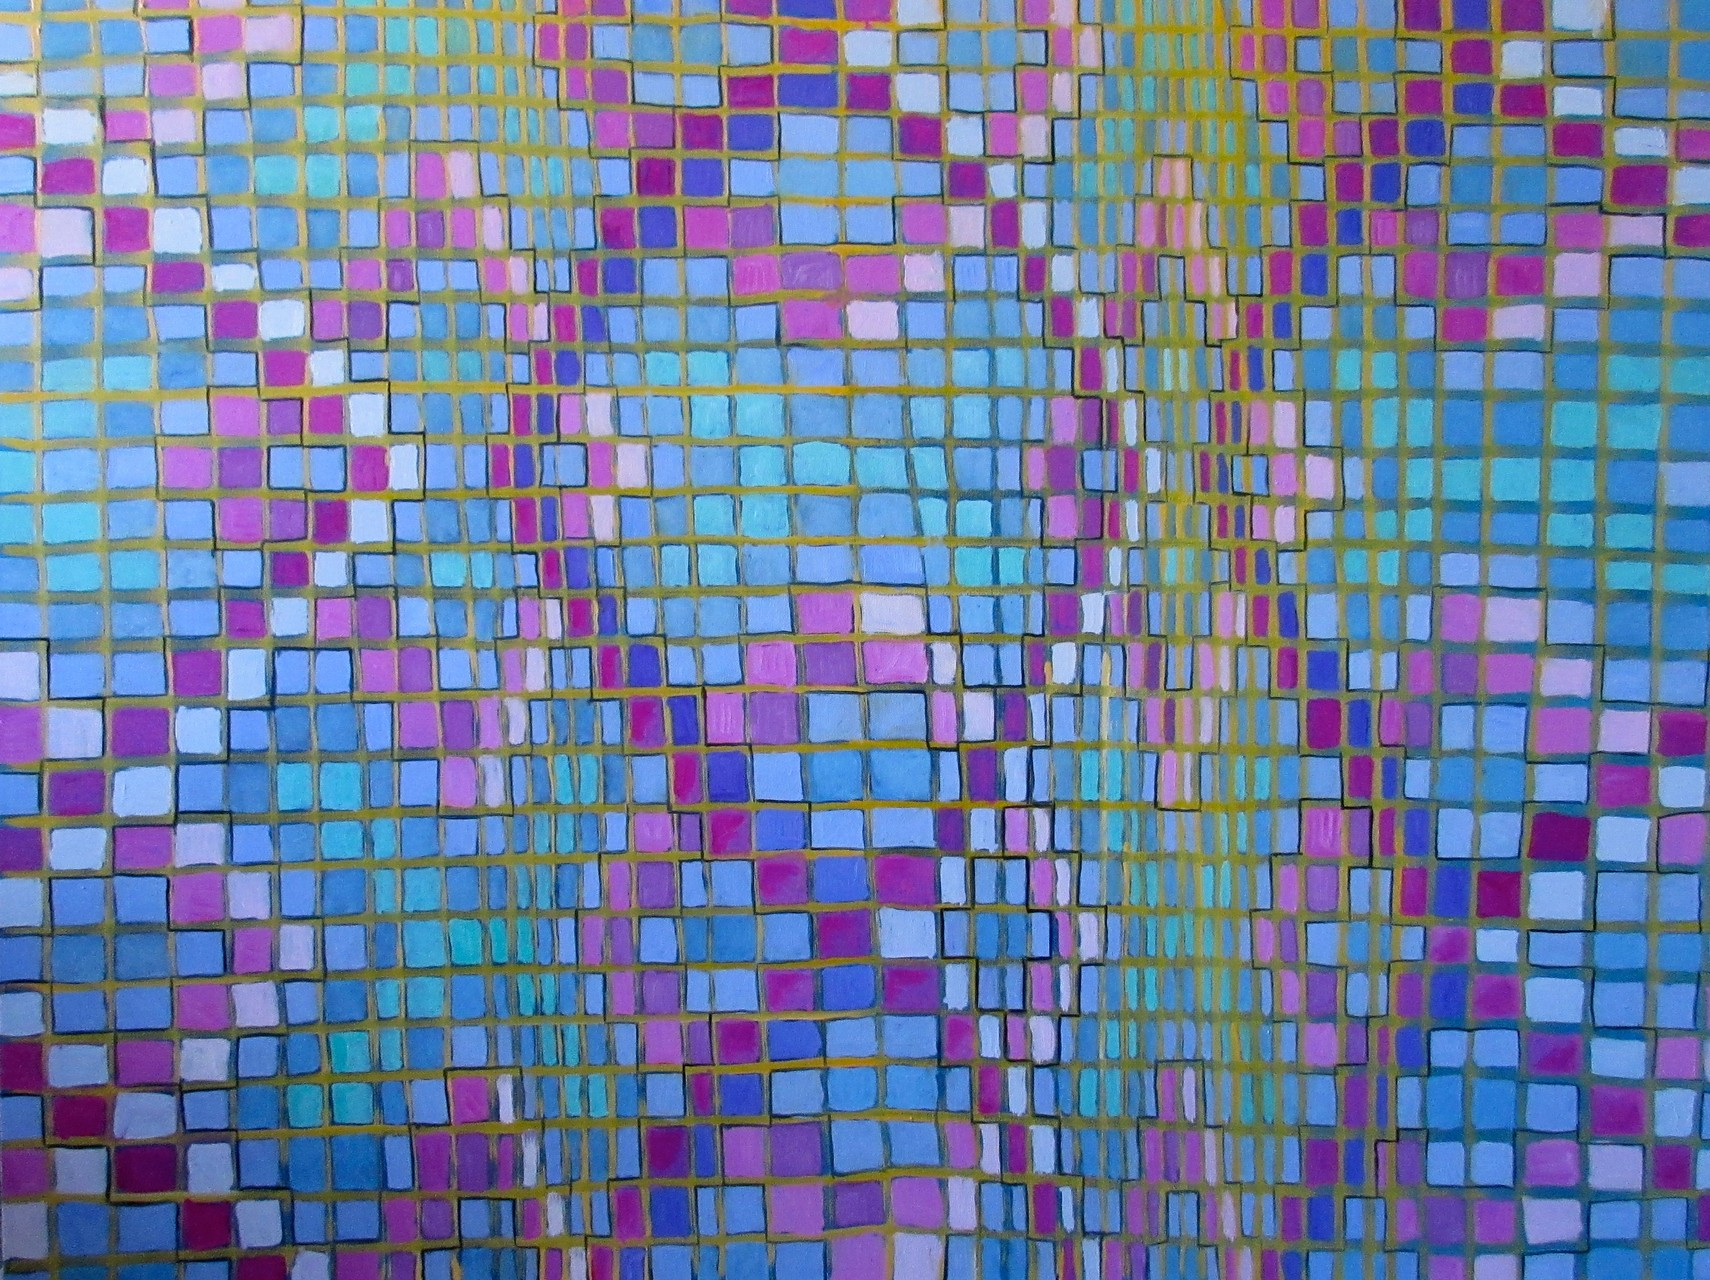 """Argyle"" (Naive Series VI) oil on canvas 30x40, July 2015"